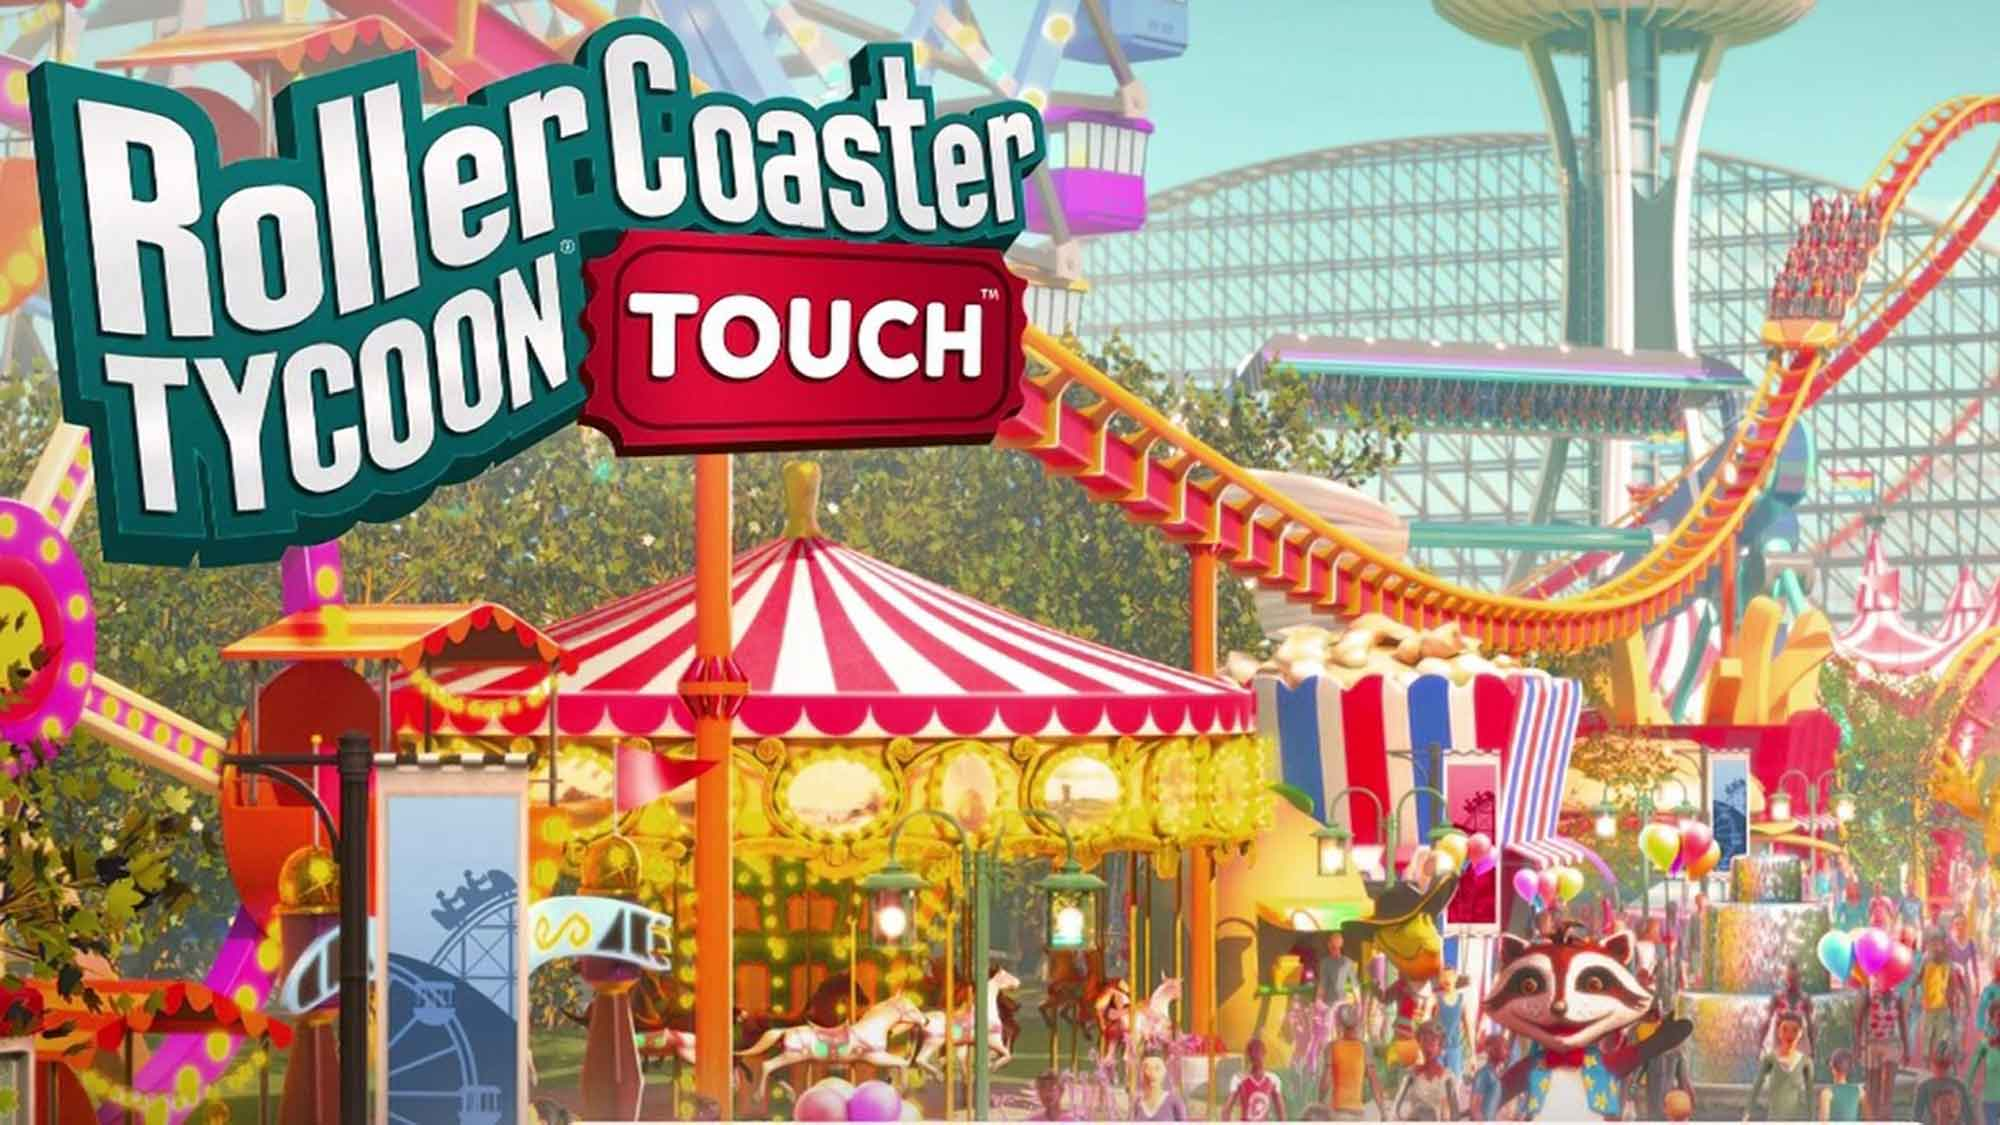 Atari Makes A Comeback Thanks To RollerCoaster Tycoon Touch